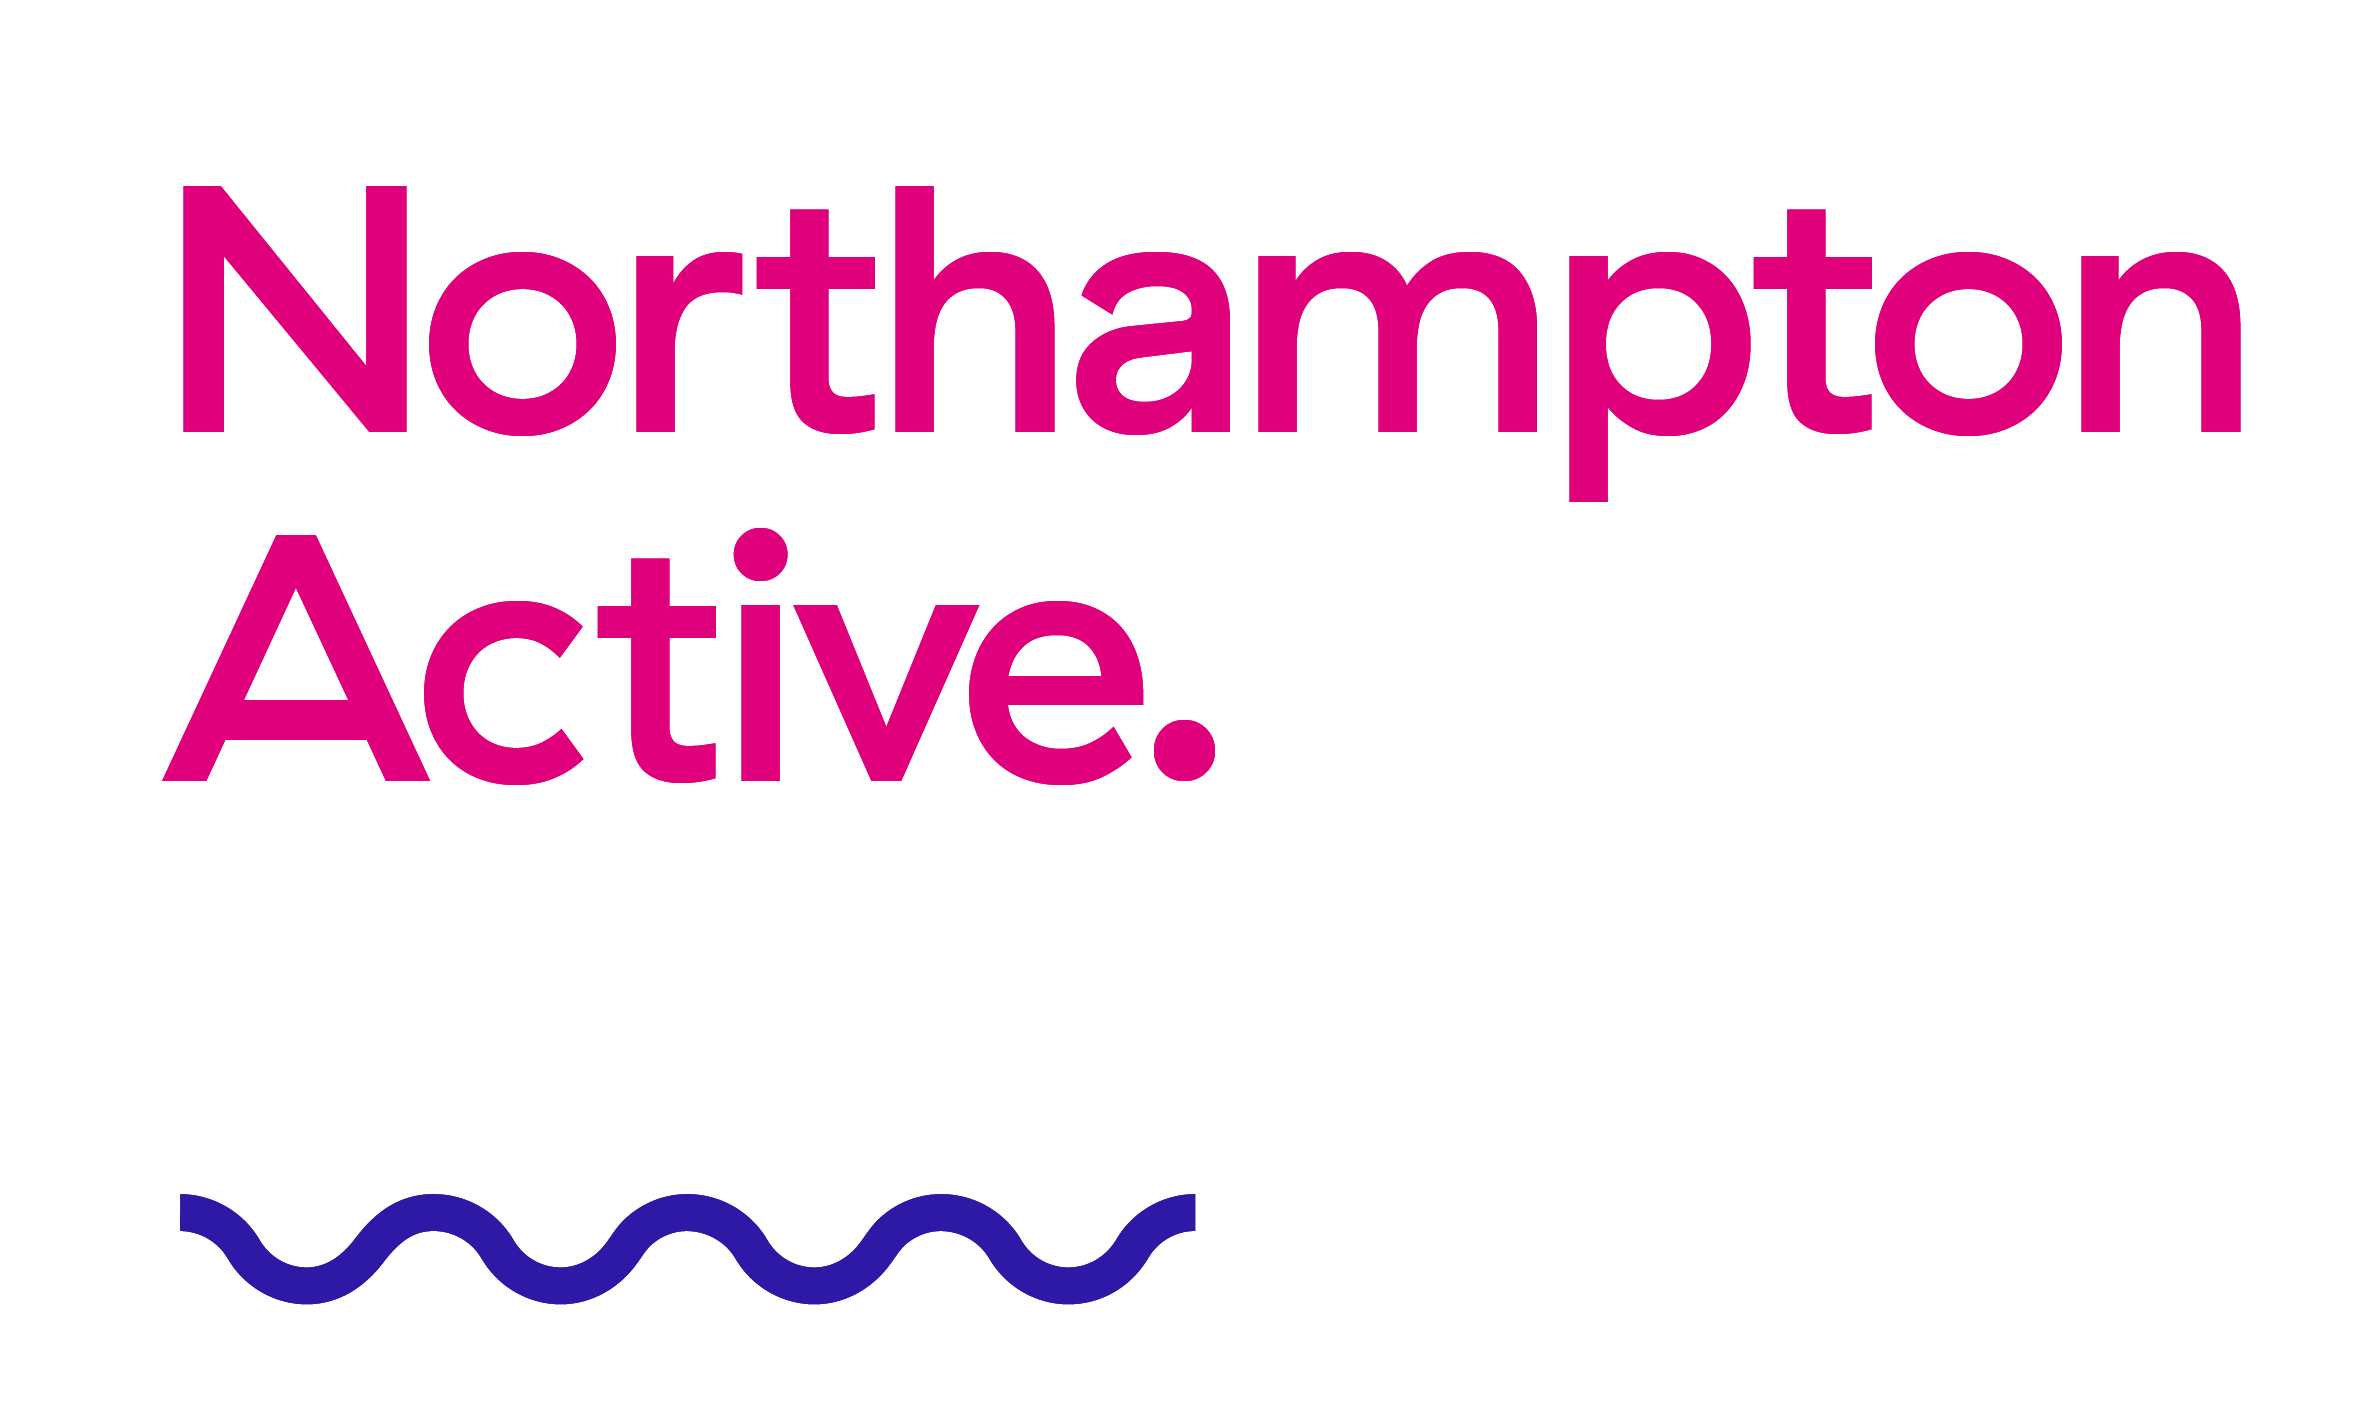 Northampton Active